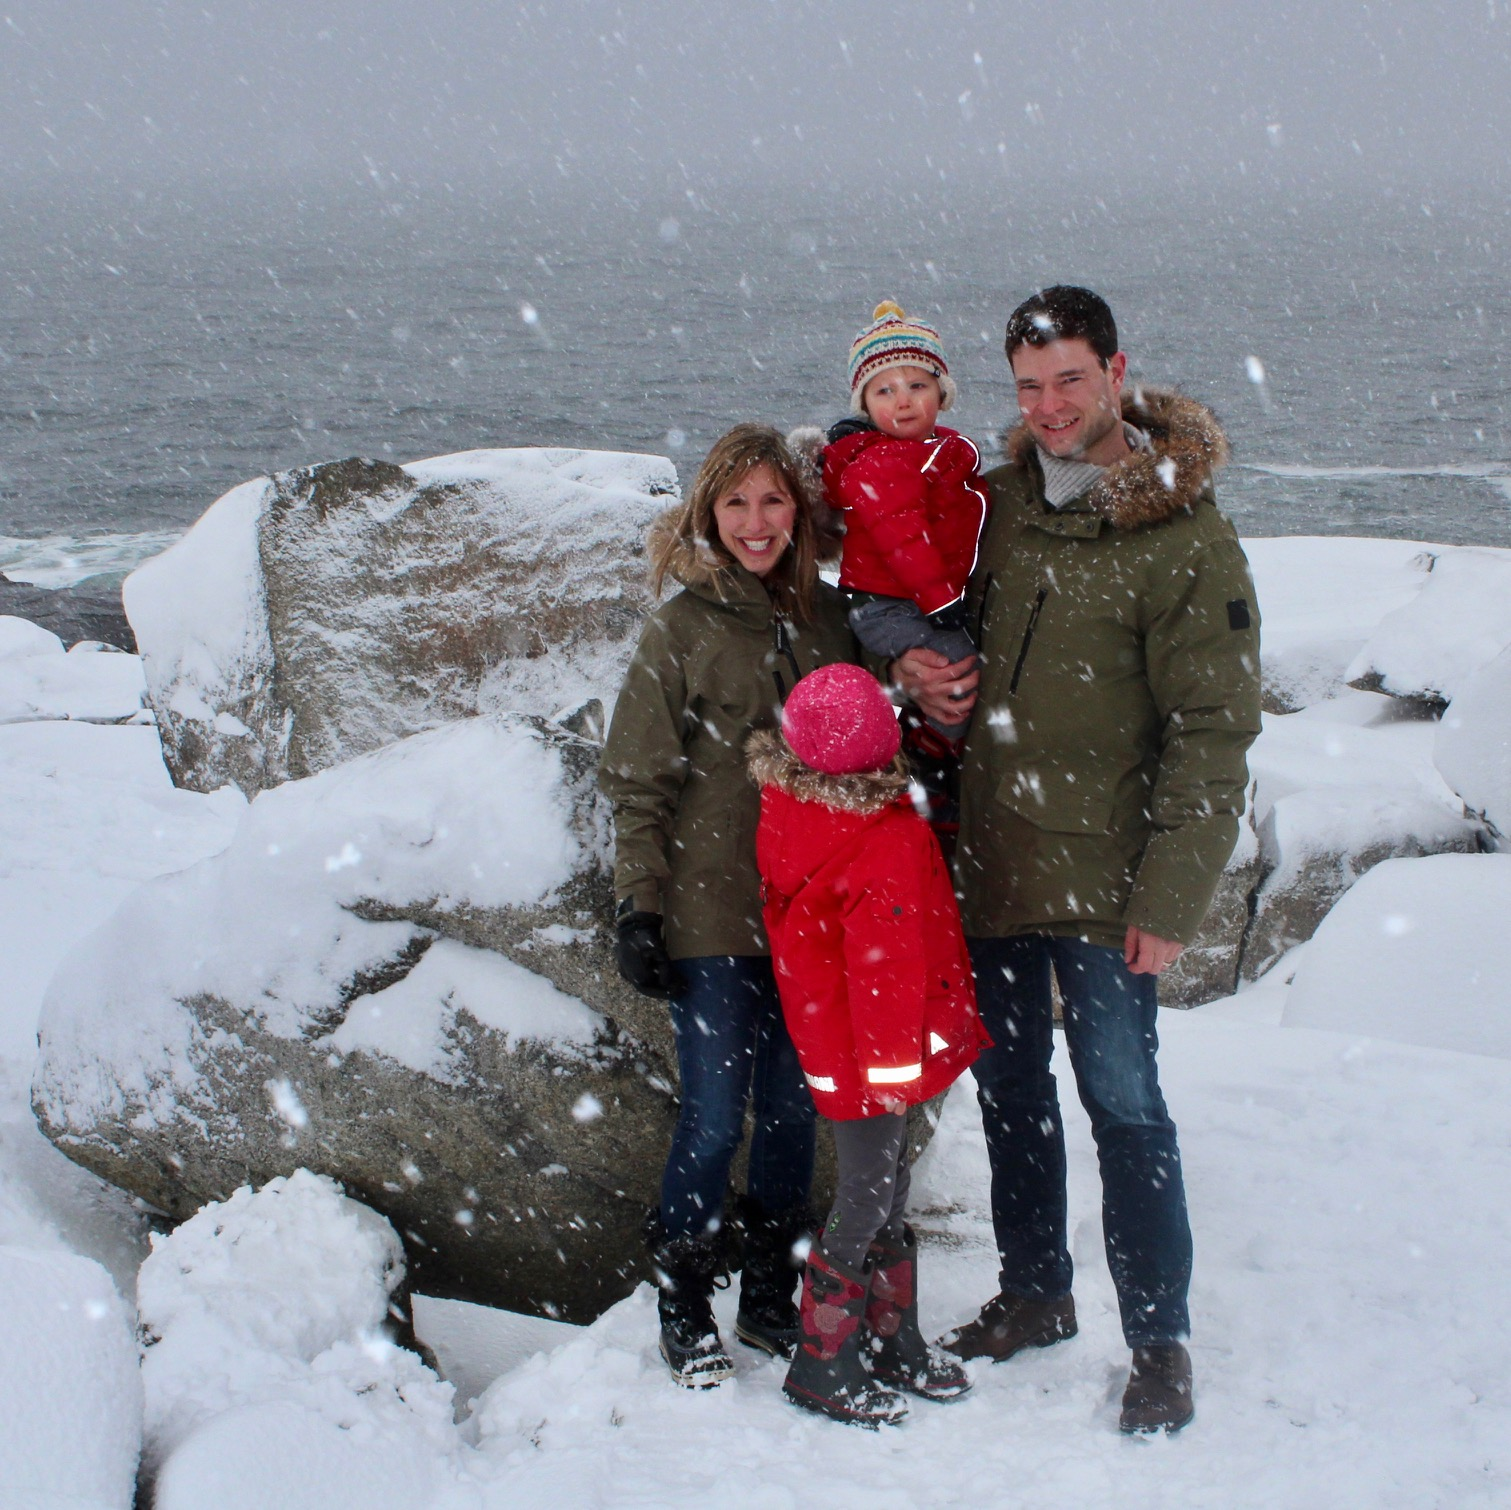 The Birch Family's first trip to Peggy's Cove